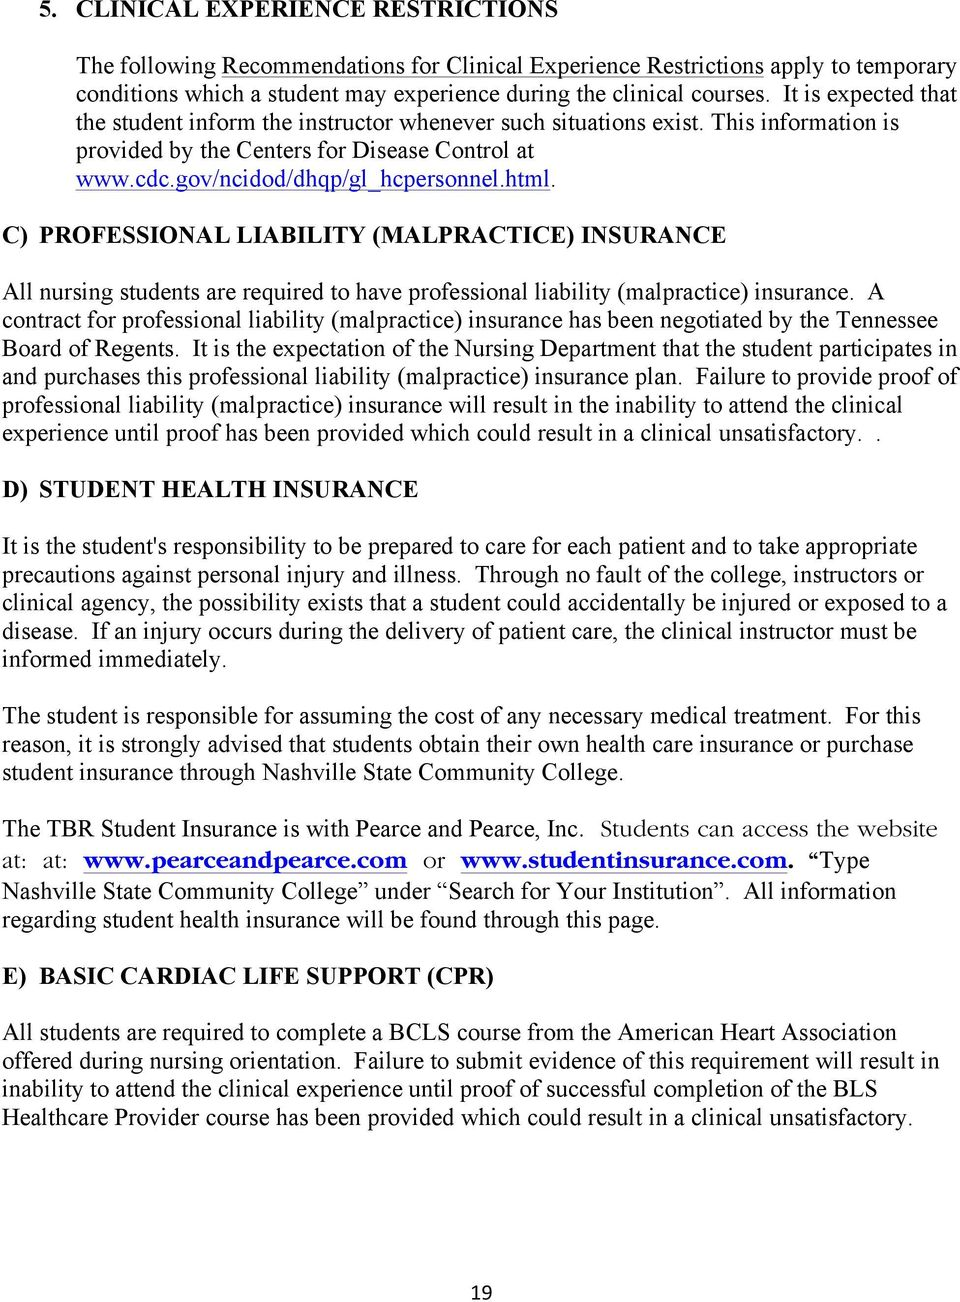 C) PROFESSIONAL LIABILITY (MALPRACTICE) INSURANCE All nursing students are required to have professional liability (malpractice) insurance.